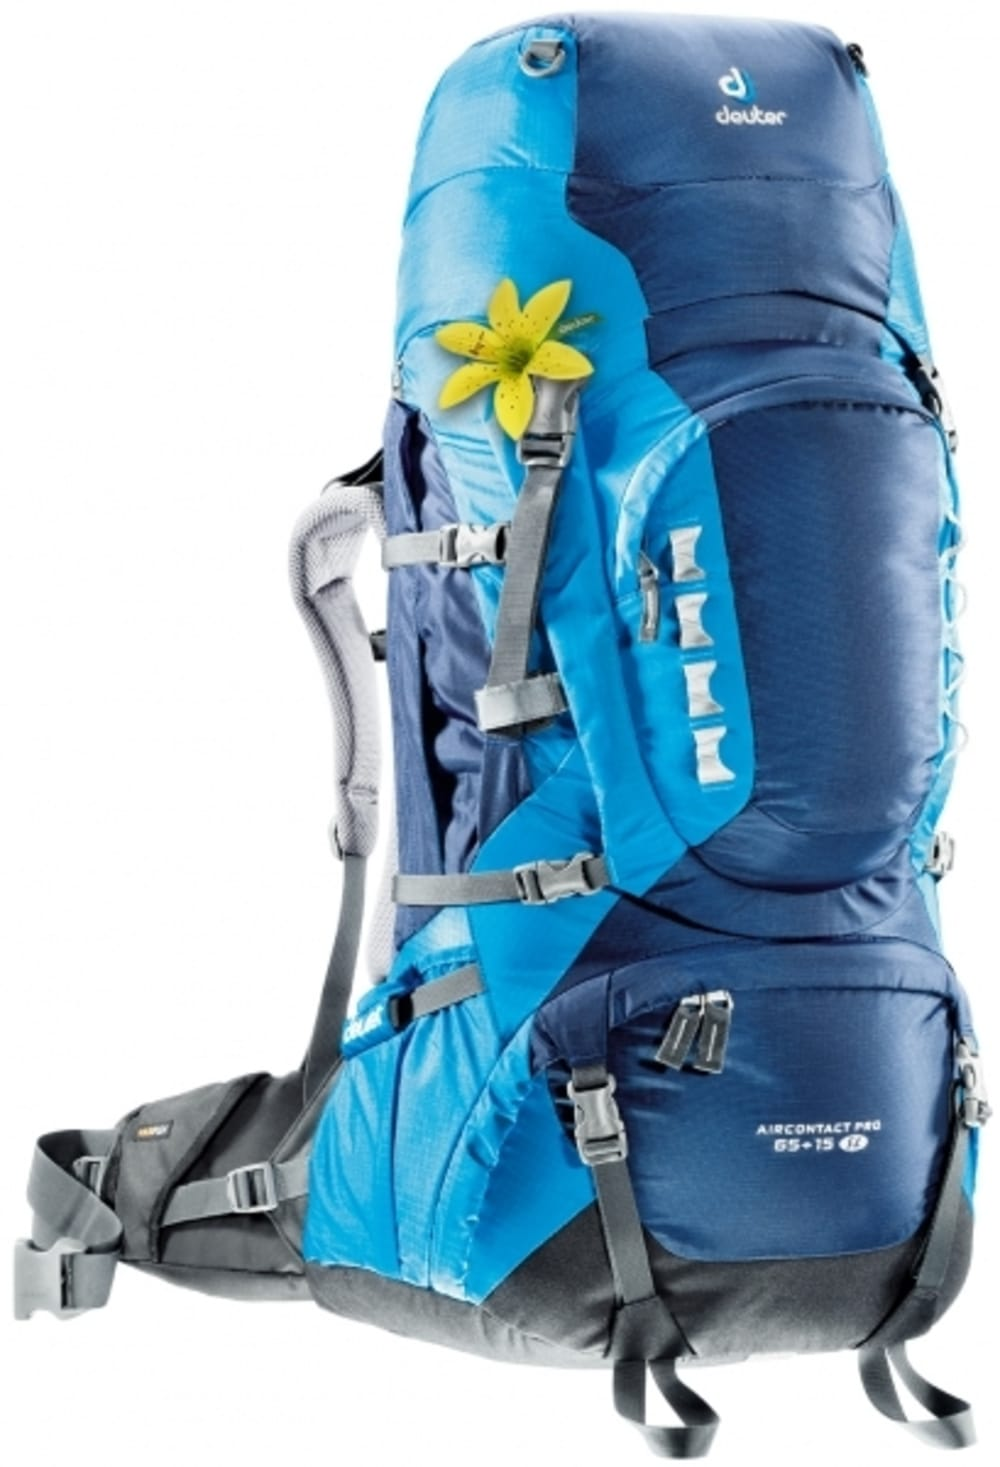 DEUTER Women's Aircontact Pro 65+15 SL Backpack - MIDNIGHT/TURQUOISE